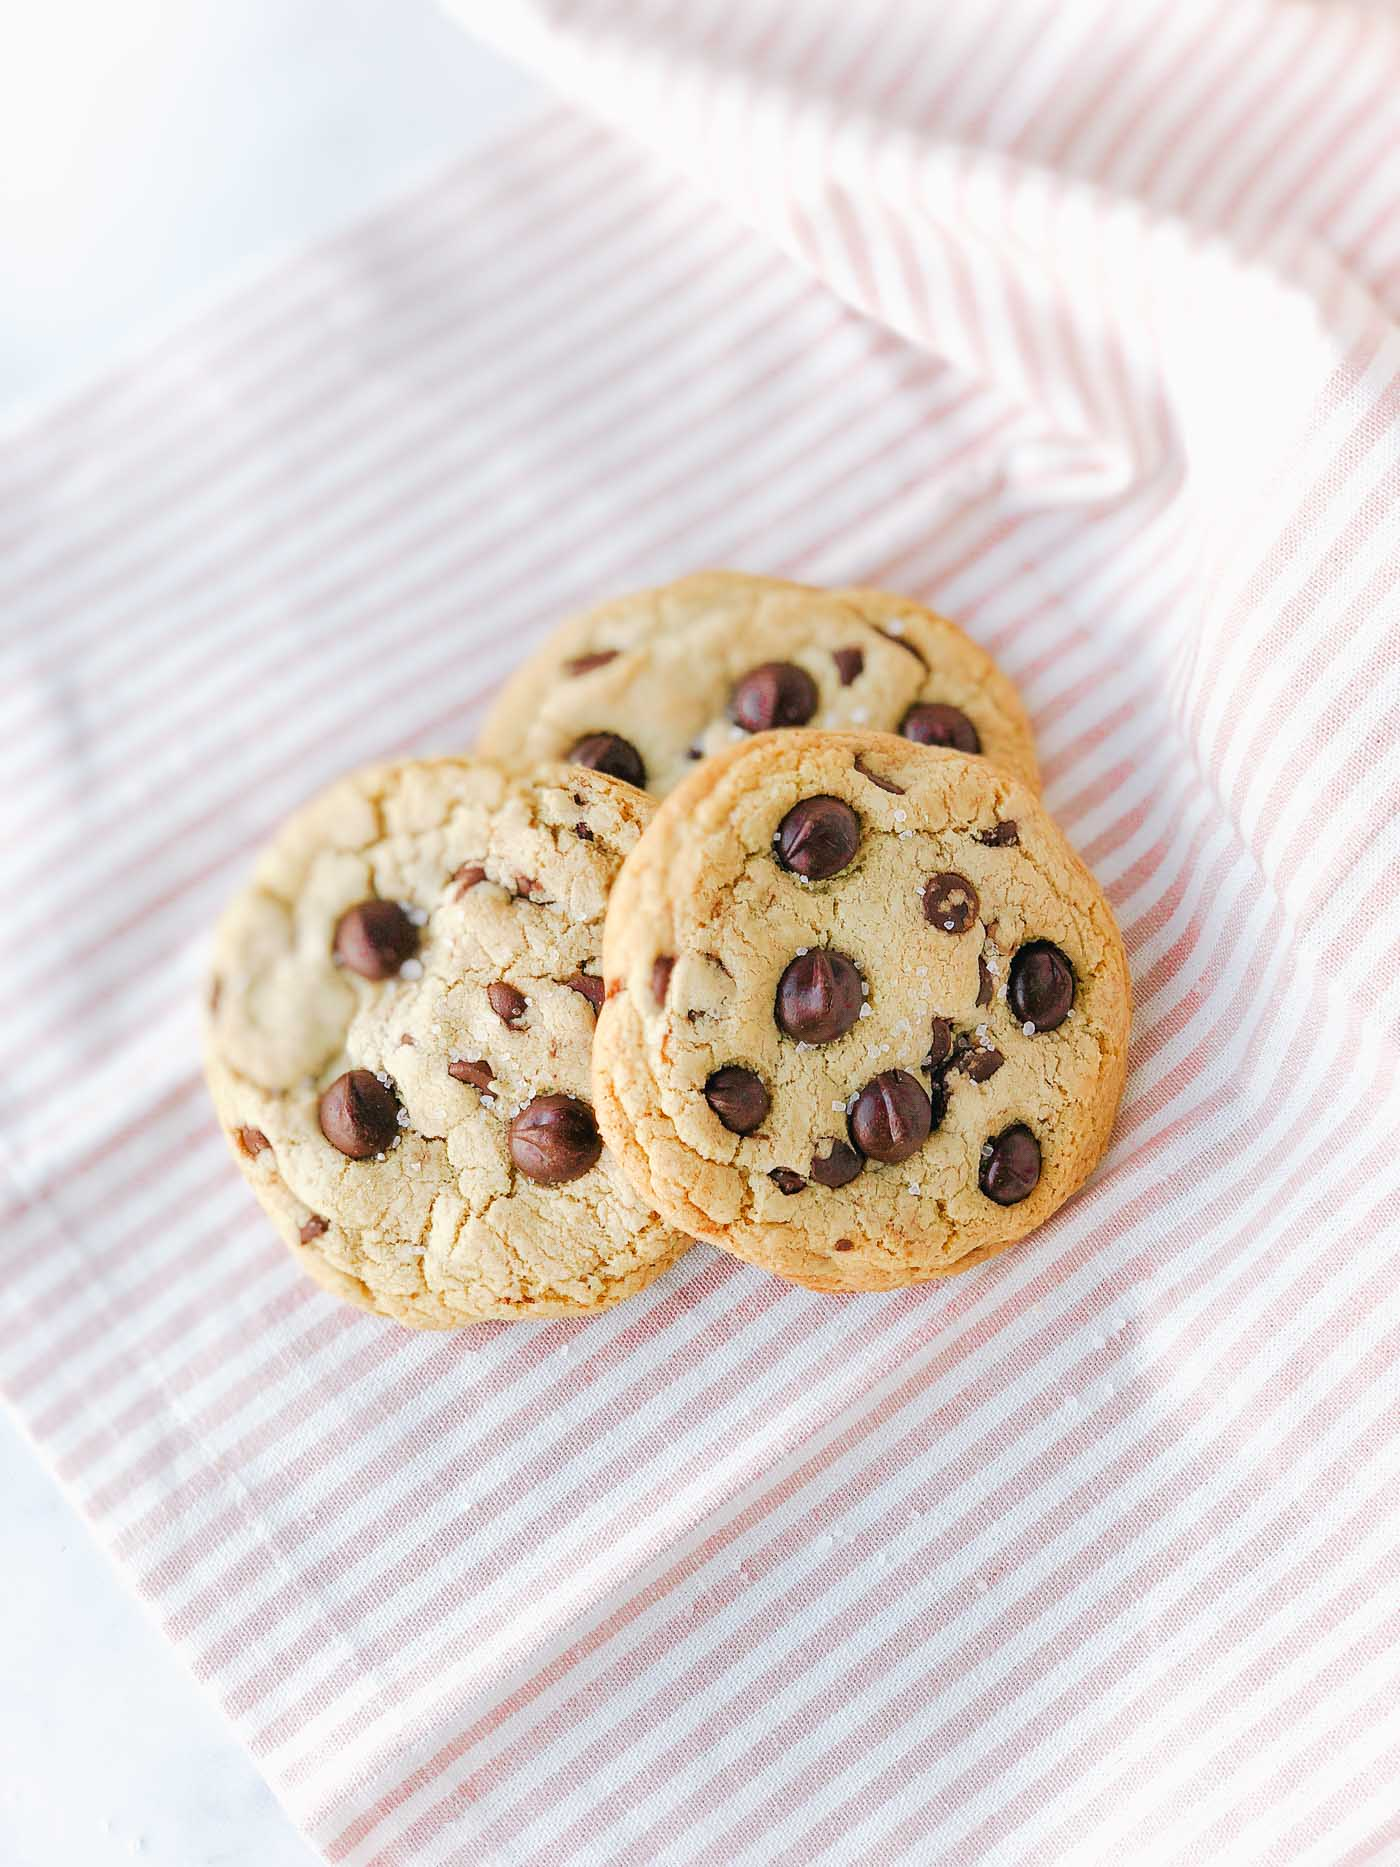 Brown butter chocolate chip cookies on light pink striped dish towel.